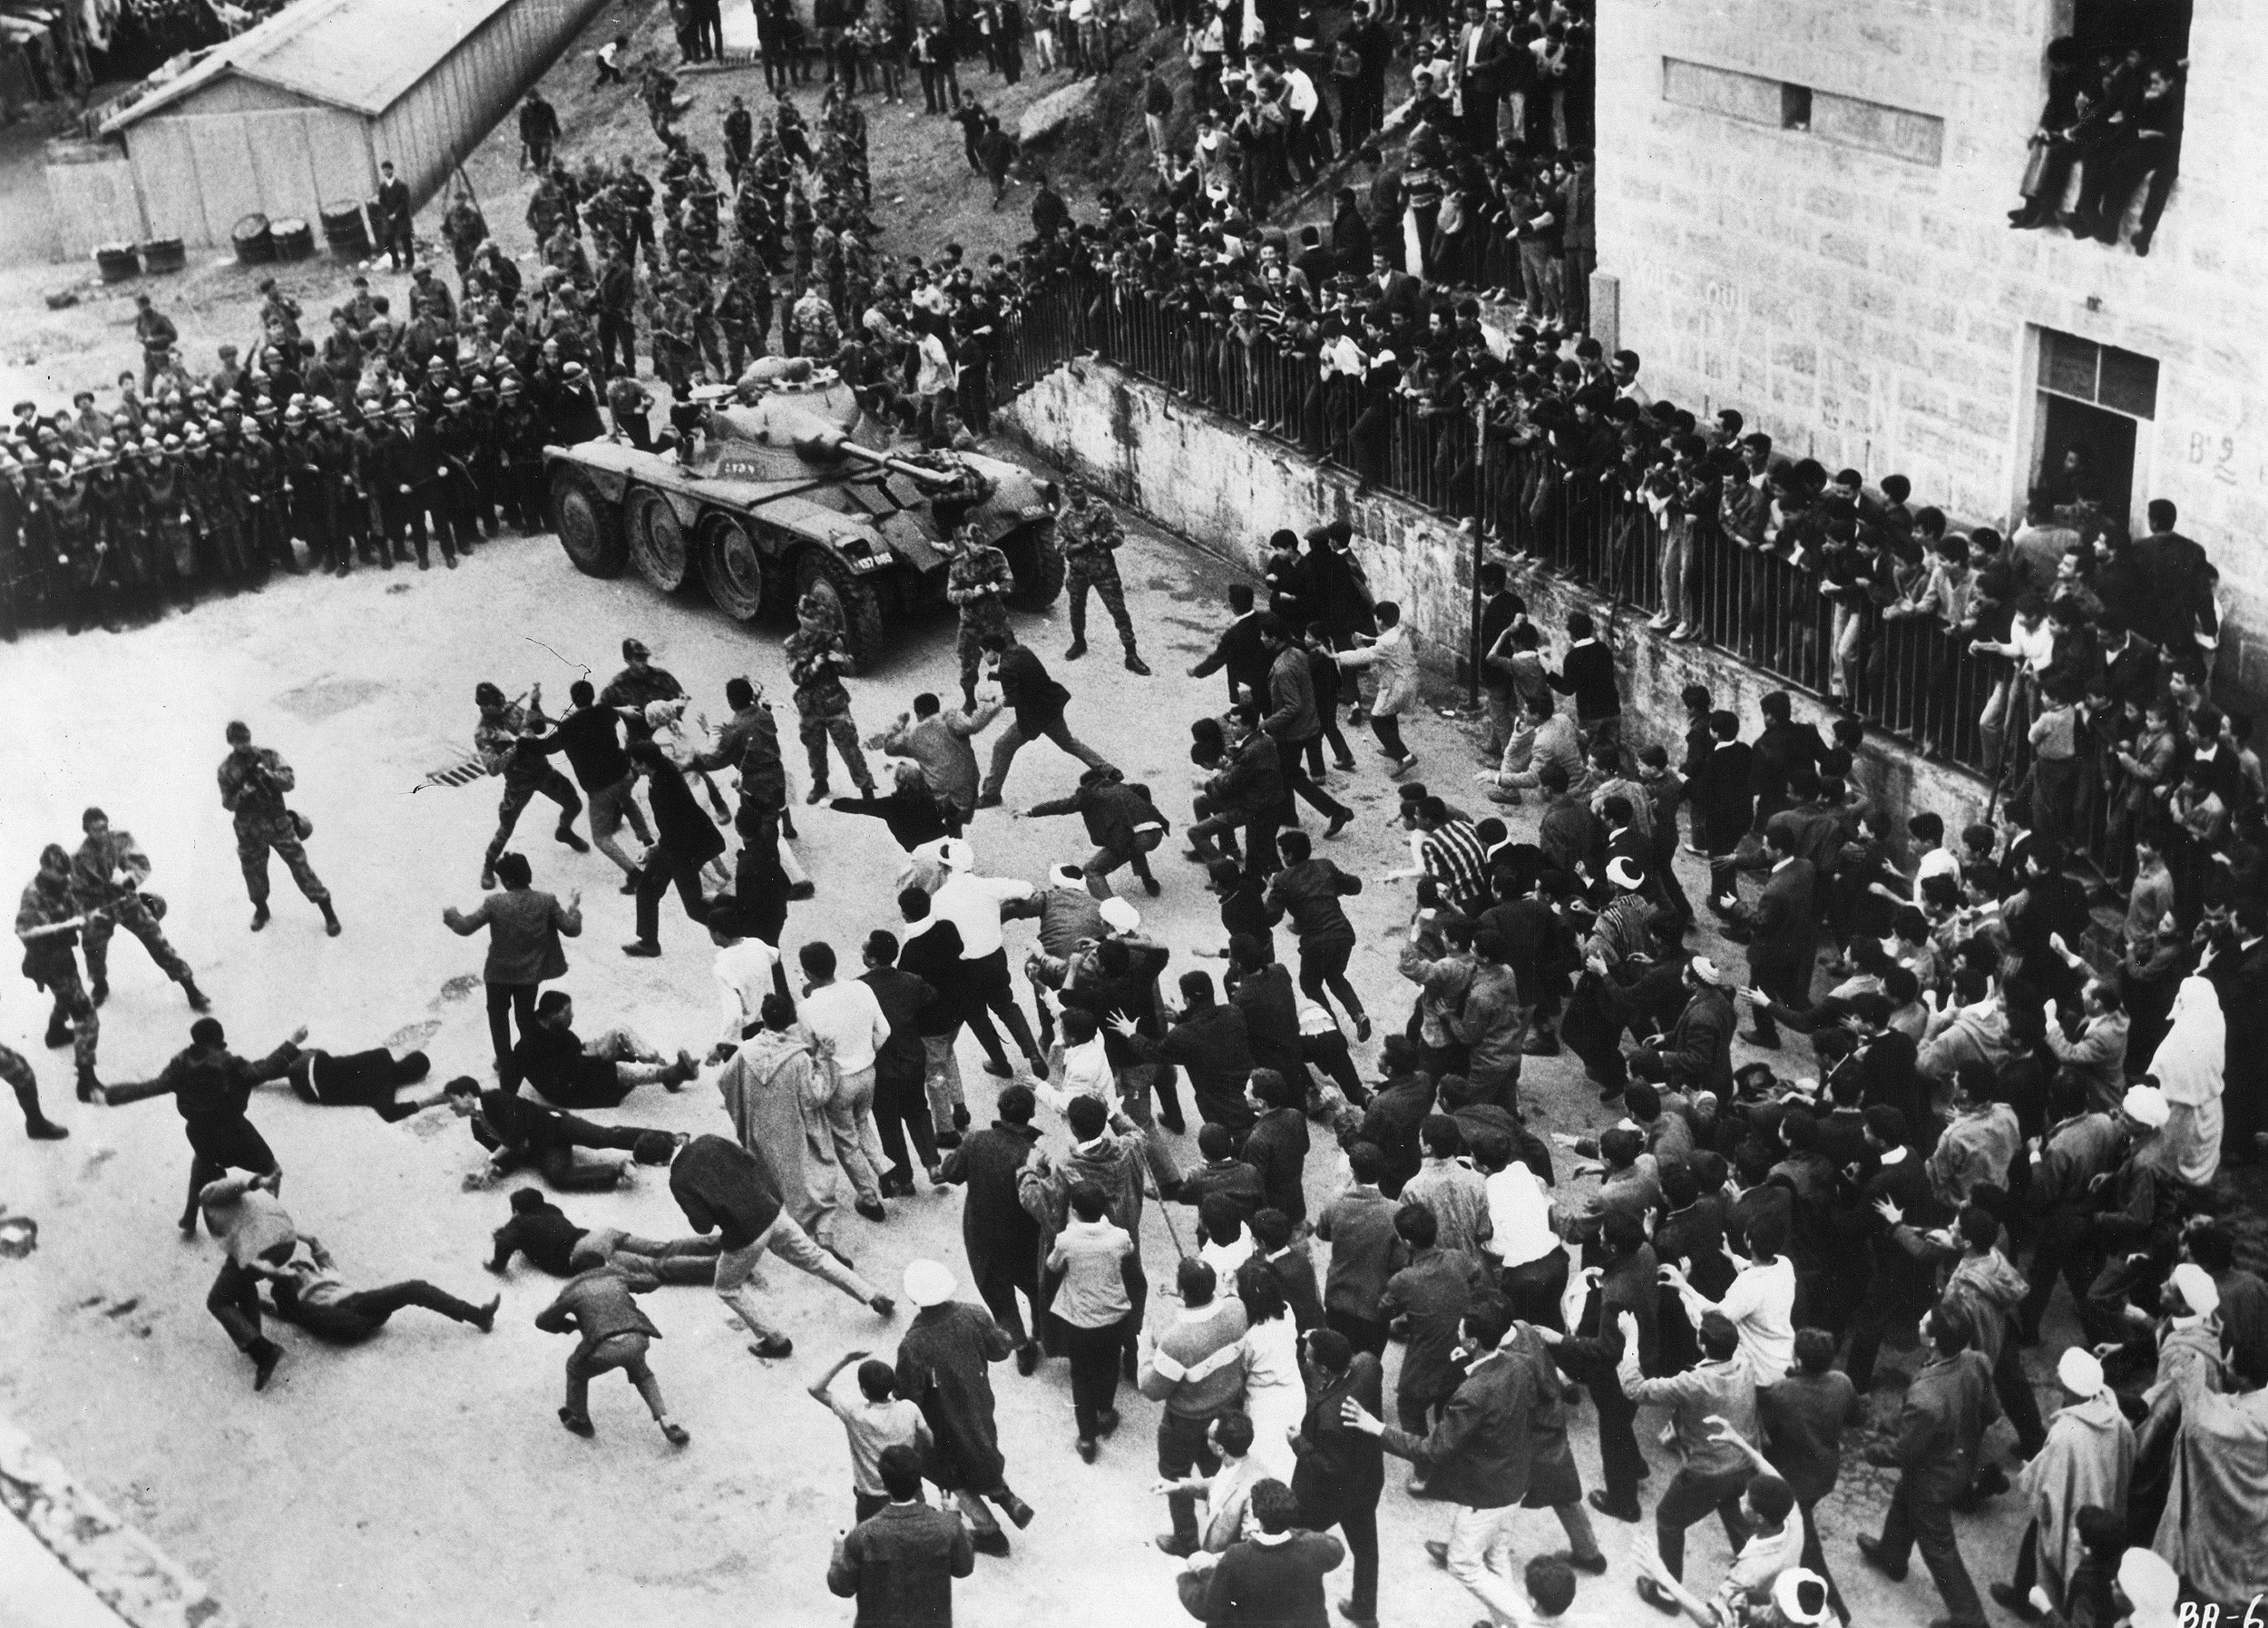 Stills from  The Battle of Algiers